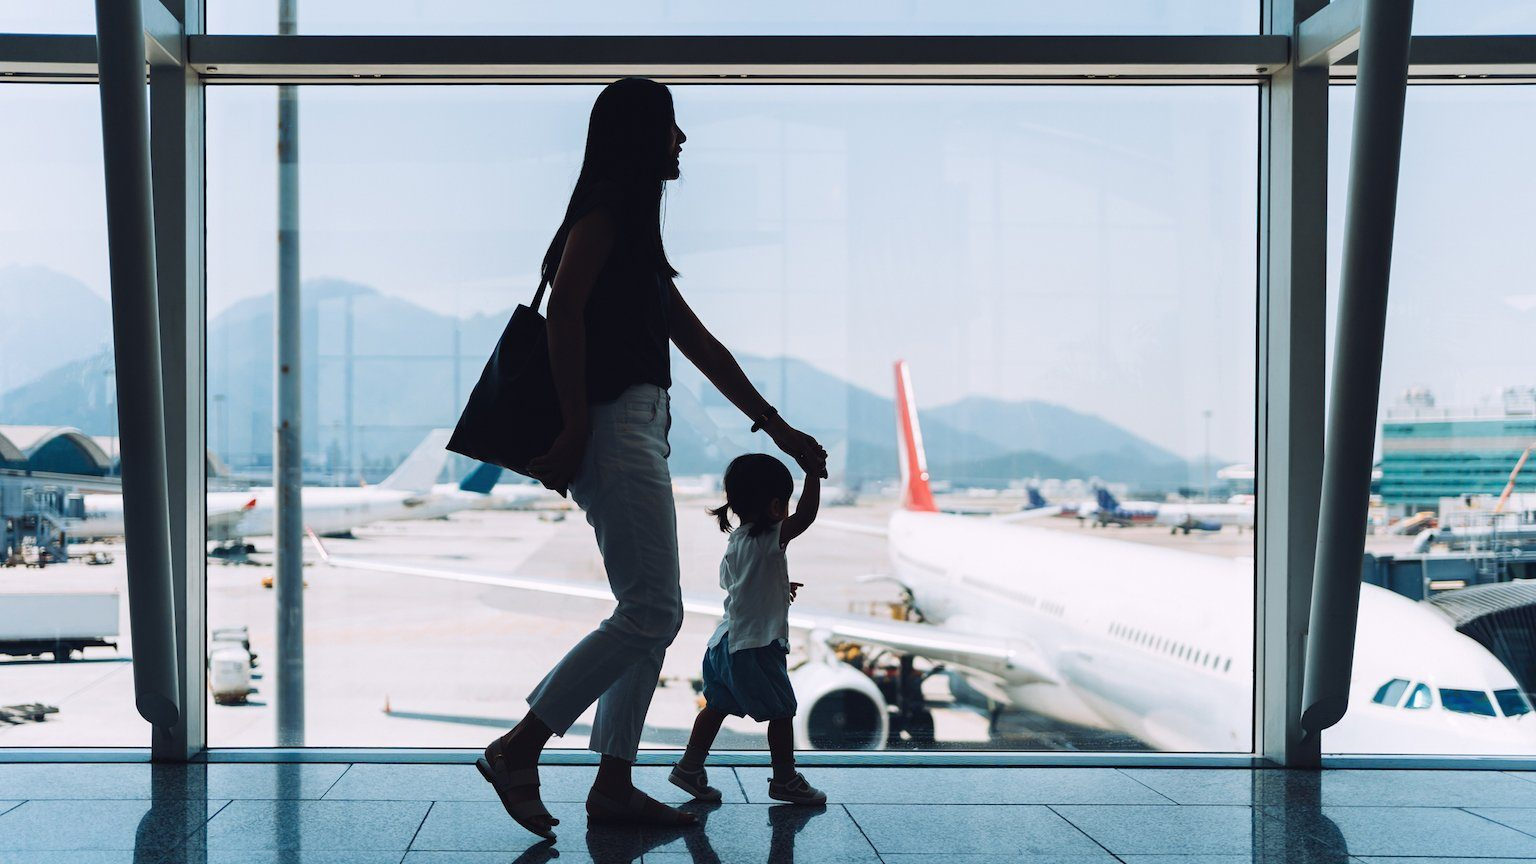 Lady and daughter at airport.